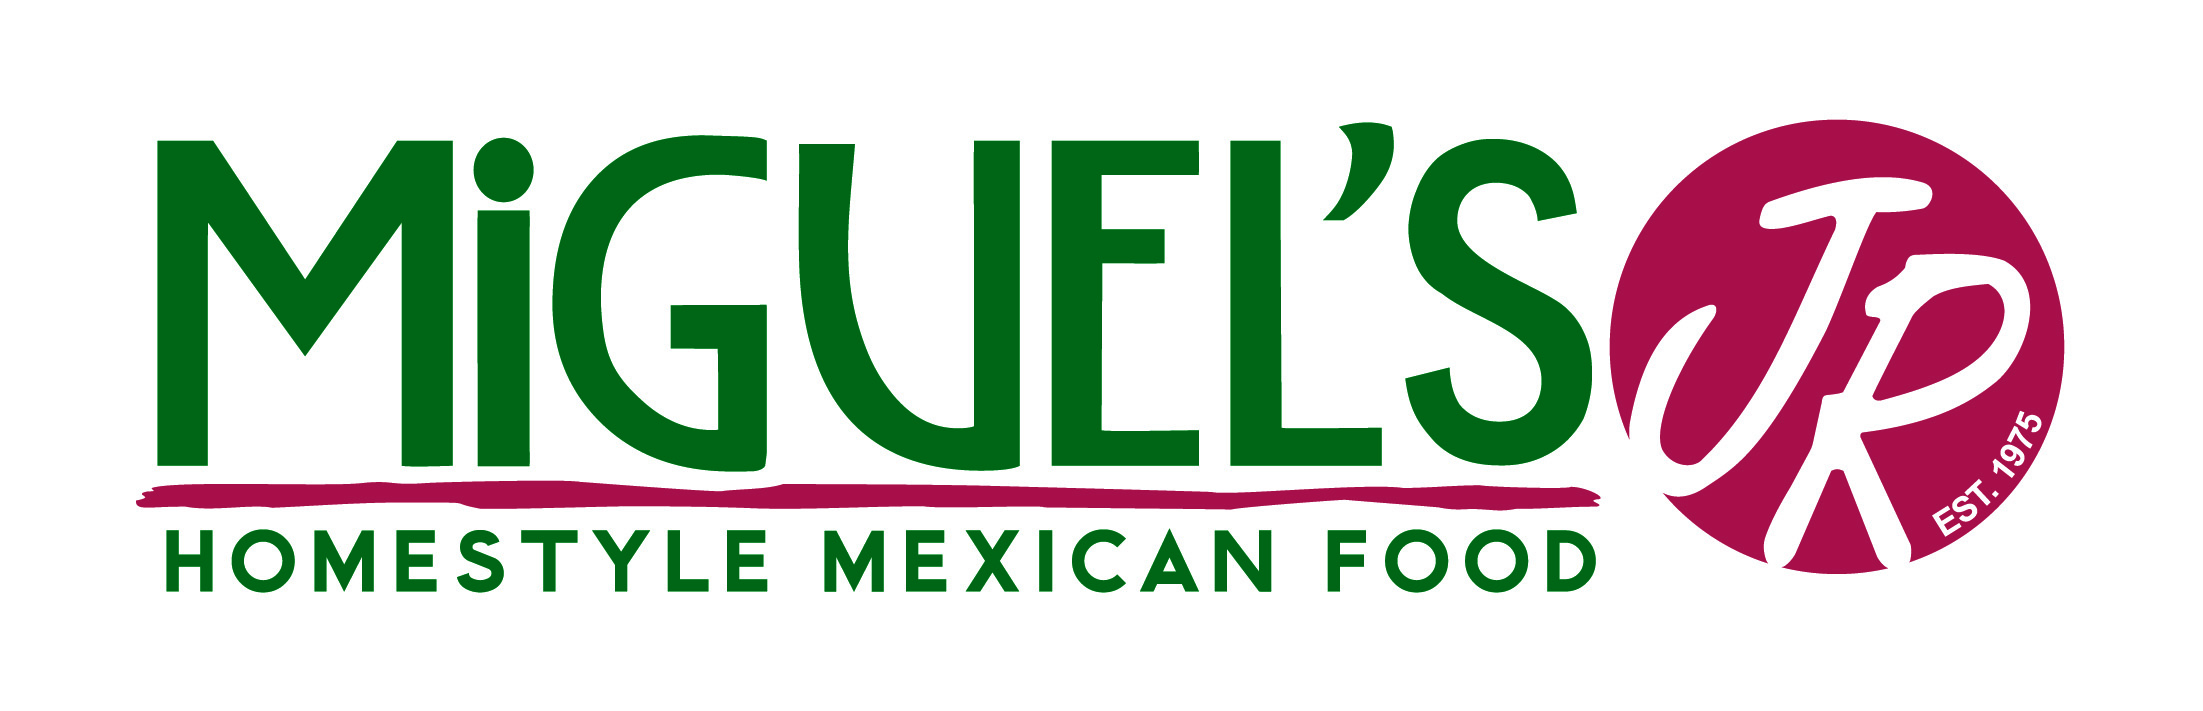 Miguel's Jr Homestyle Mexican Food       Logo